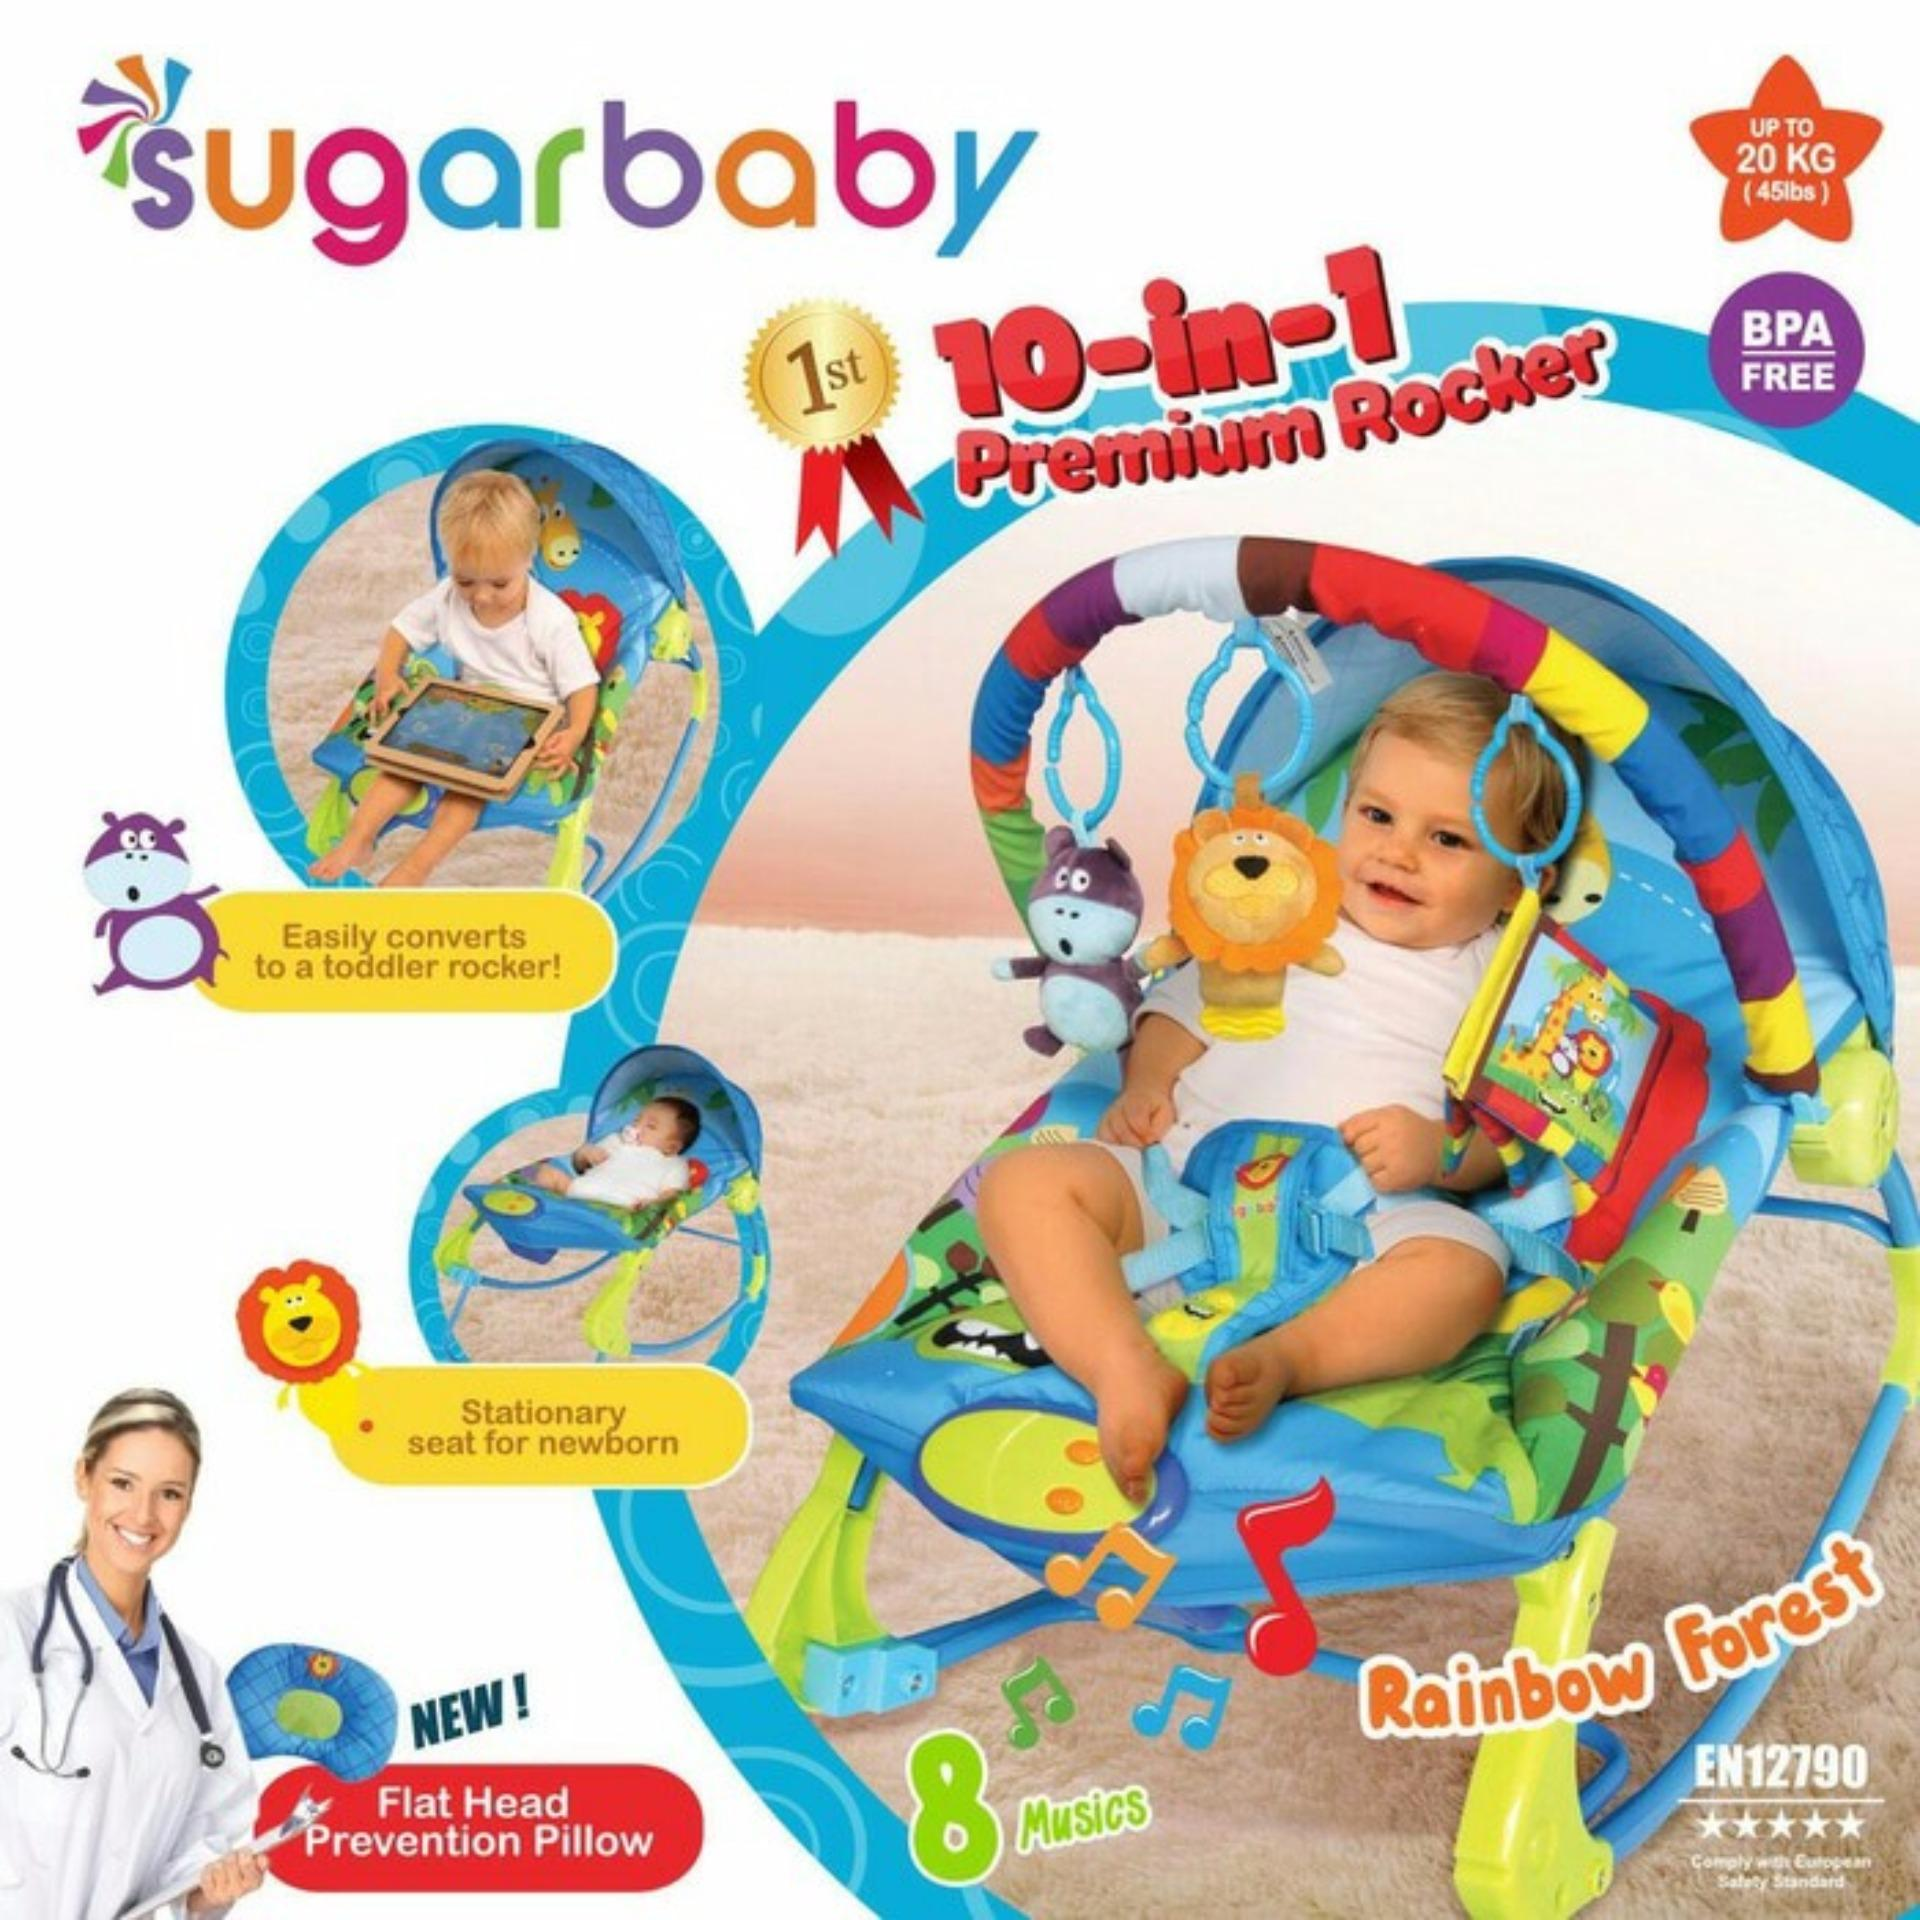 Toko Sugar Baby 10 In 1 Premium Rocker Bouncer Rainbow Forest Ayunan Bayi Kursi Goyang Bayi Sugarbaby Bouncer Lengkap